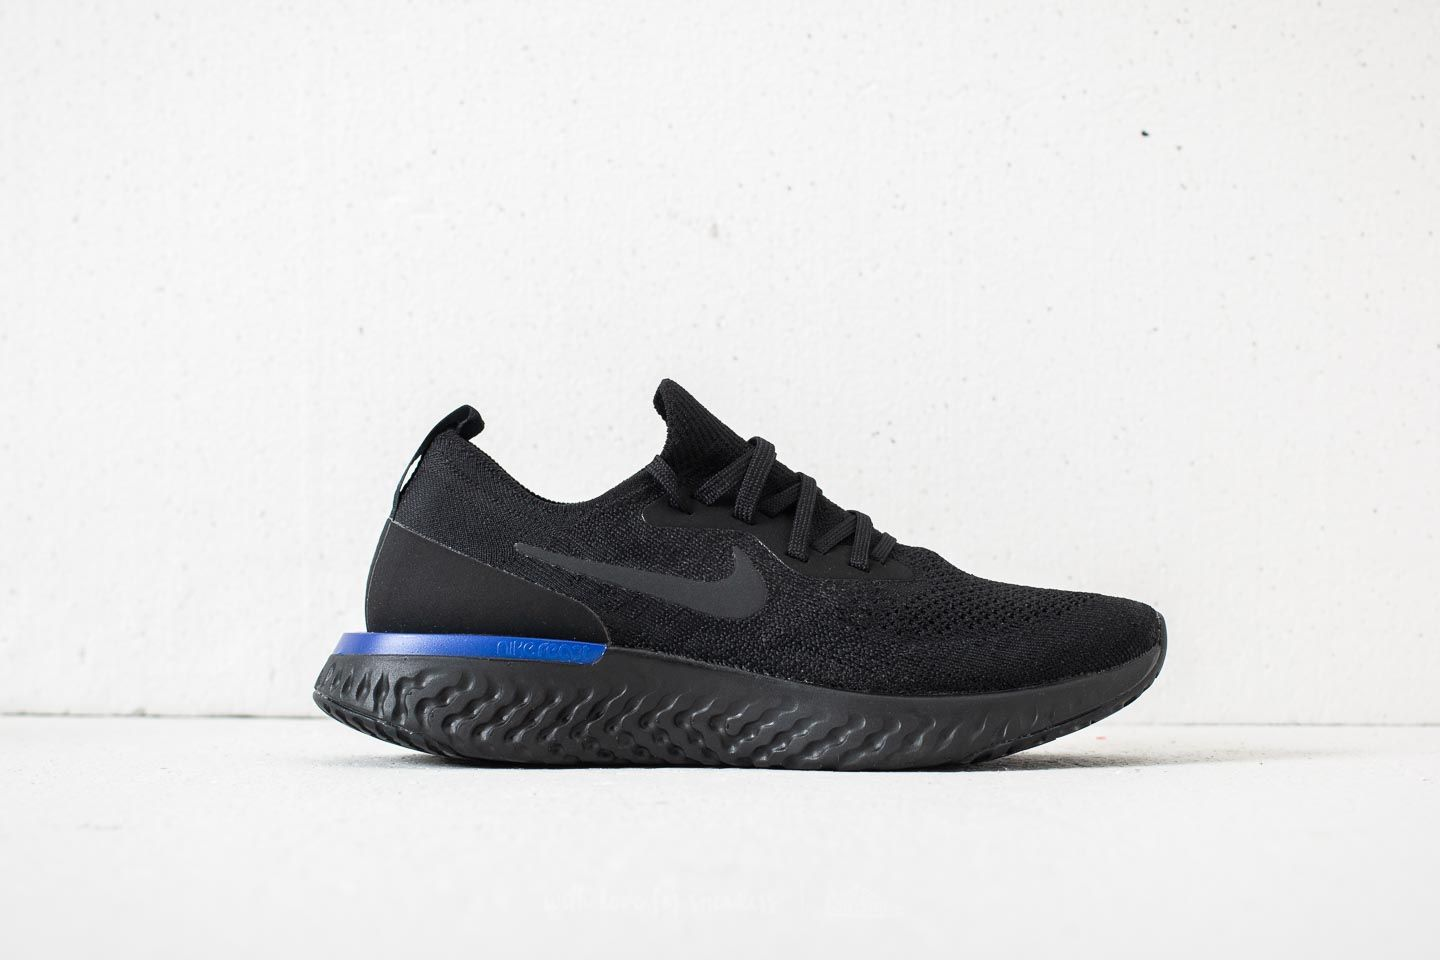 54ec5d8d0dfb Nike Wmns Epic React Flyknit Black  Black-Racer Blue at a great price 88